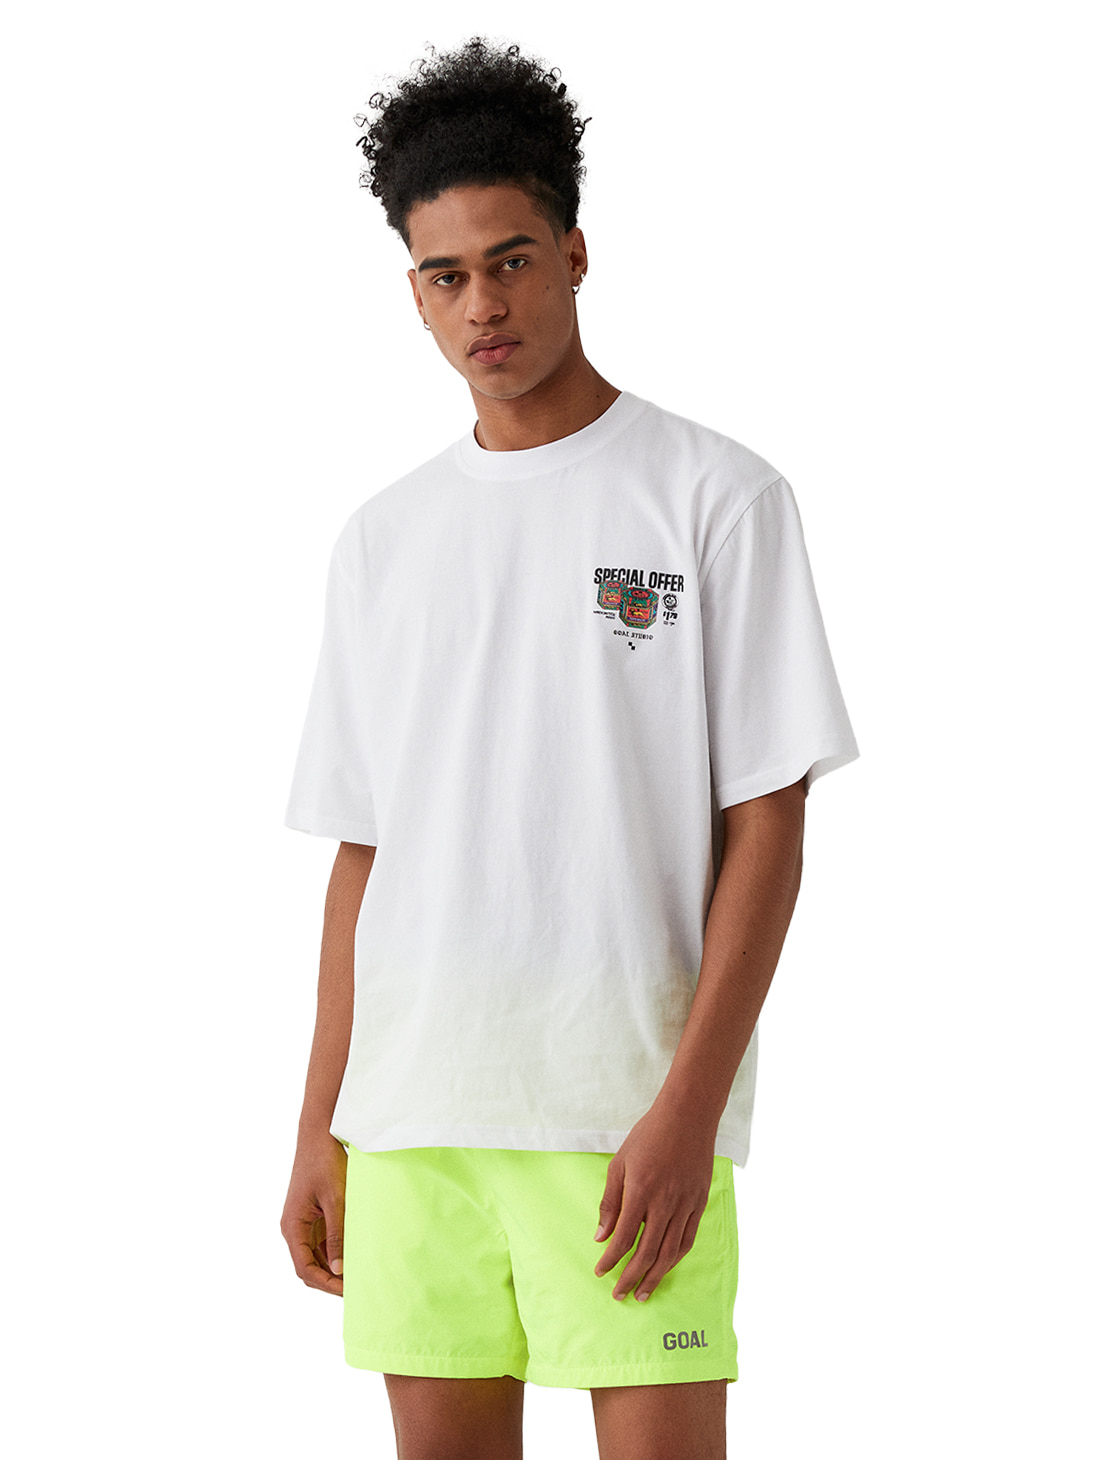 GOALSTUDIO MC BALM LOGO GRAPHIC TEE - WHITE